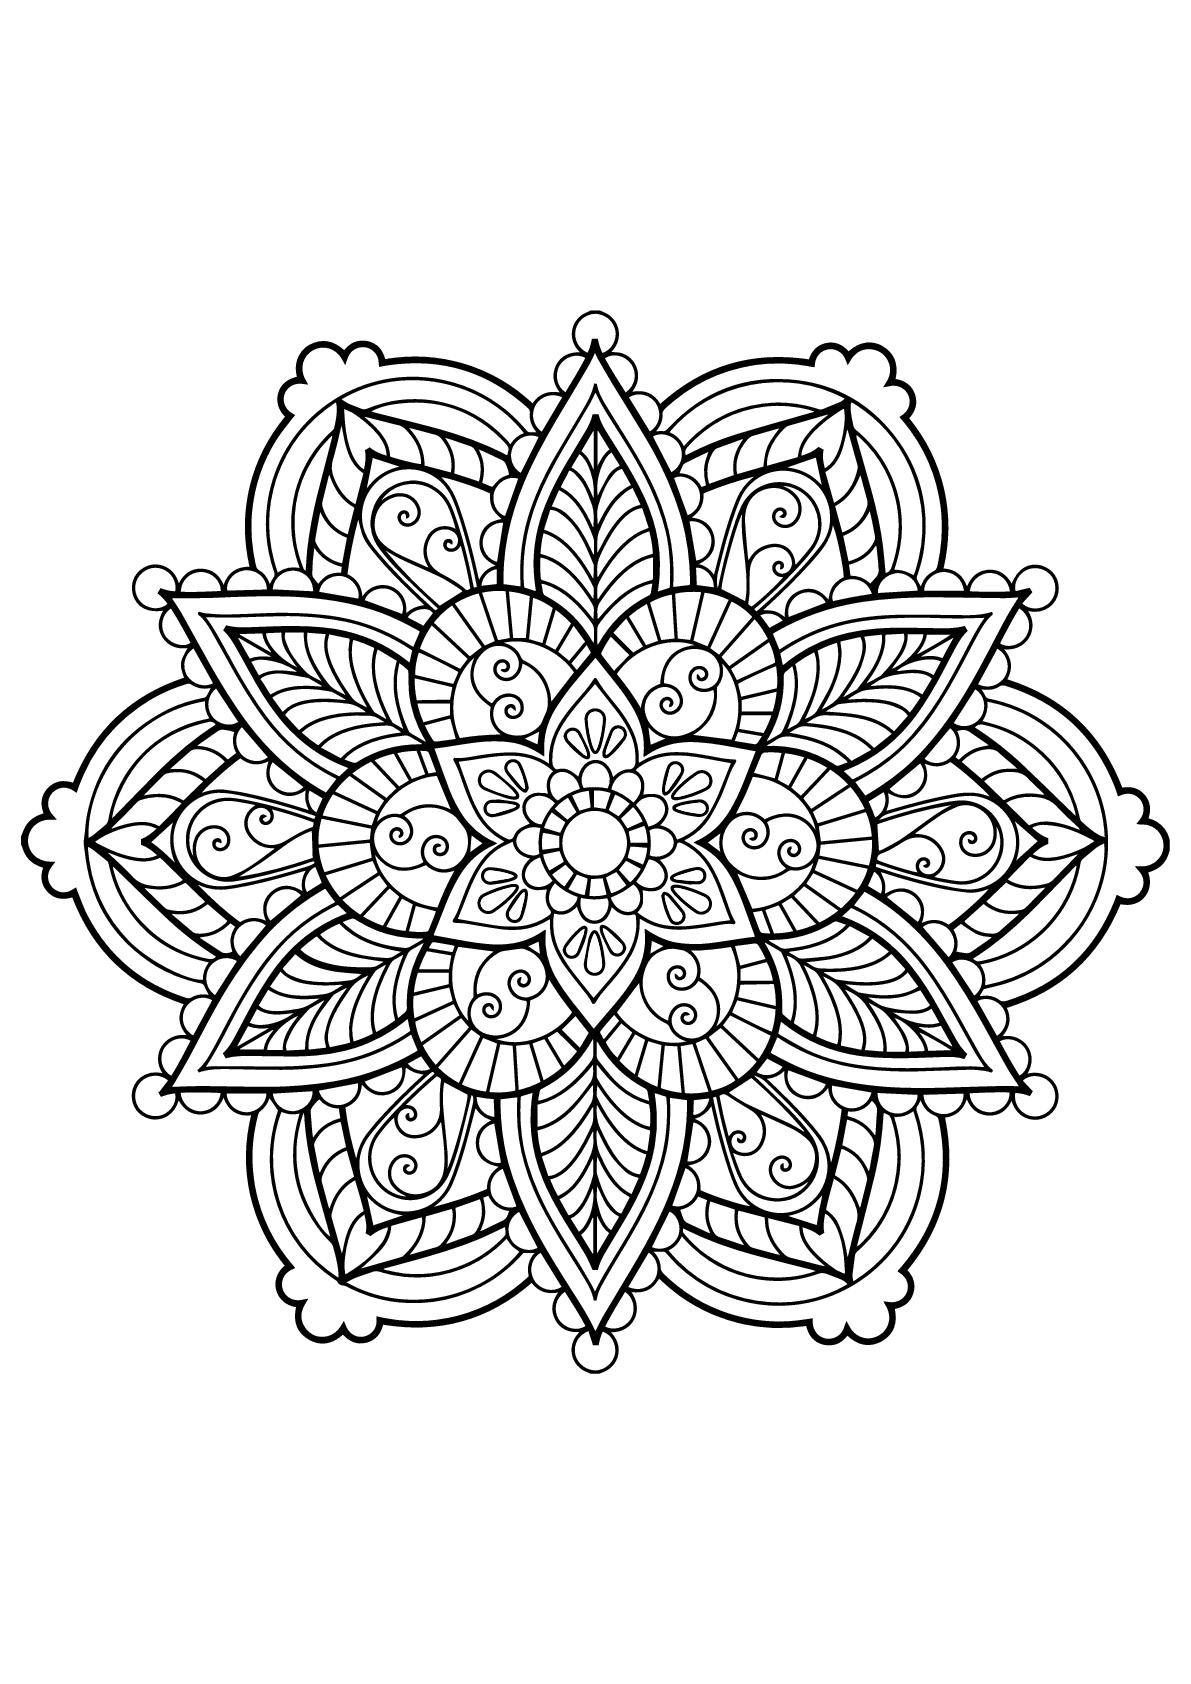 Mandala from free coloring books for adults 28 - M&alas Adult ...